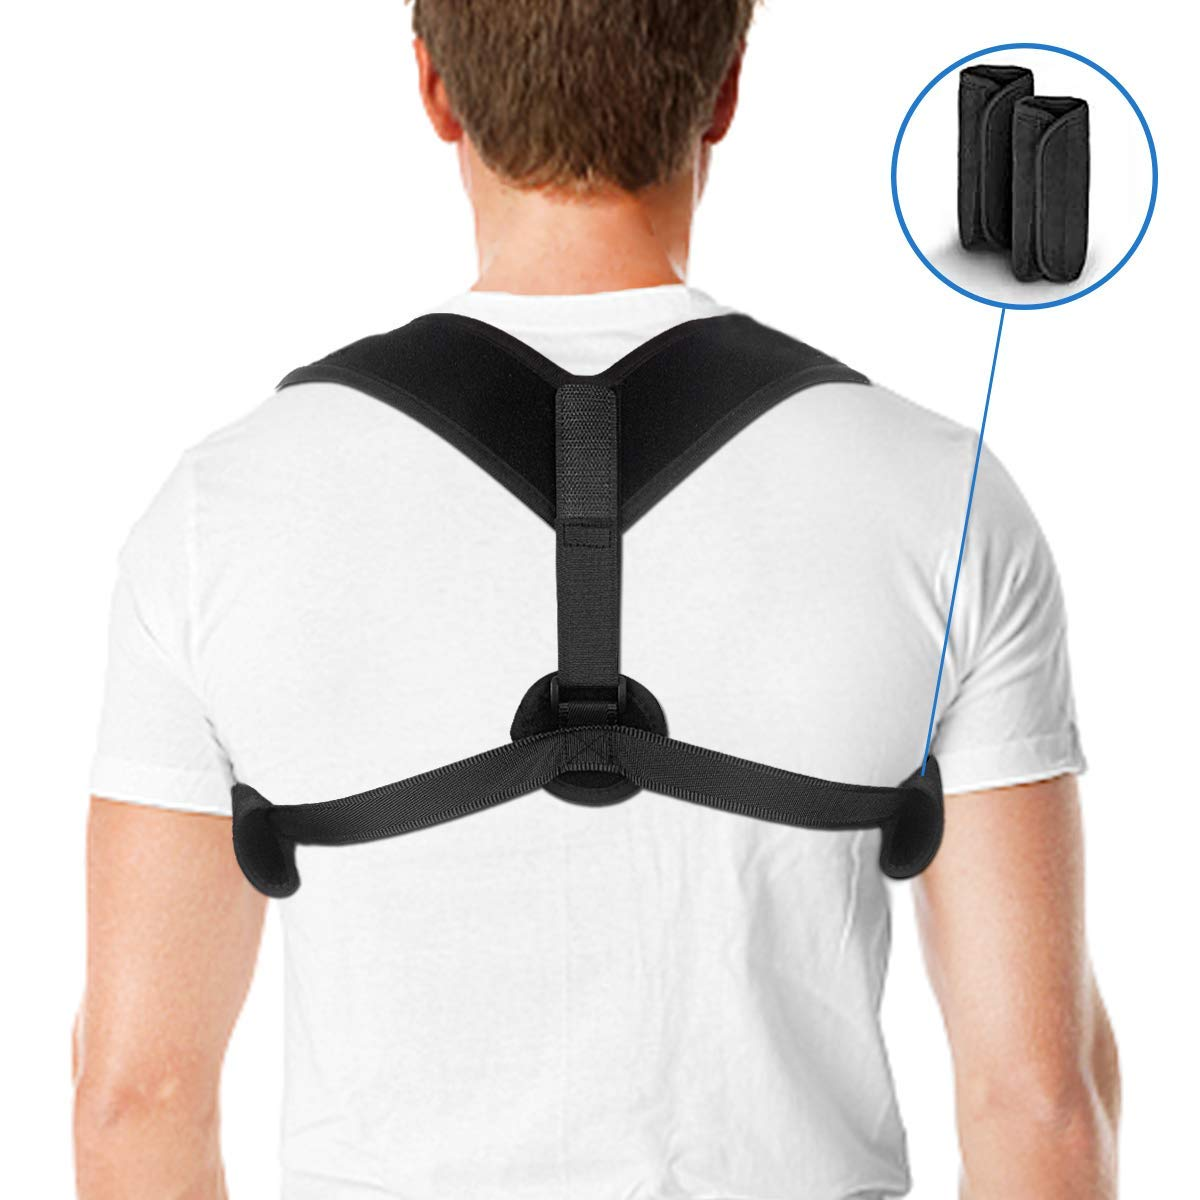 Chuandaxin Back Posture Corrector, CDX Back Brace Posture Corrector Adjustable for Women Men Clavicle Support with Detachable Comfortable Armpit Pads for Slouching, Thoracic Kyphosis, Injury Rehab